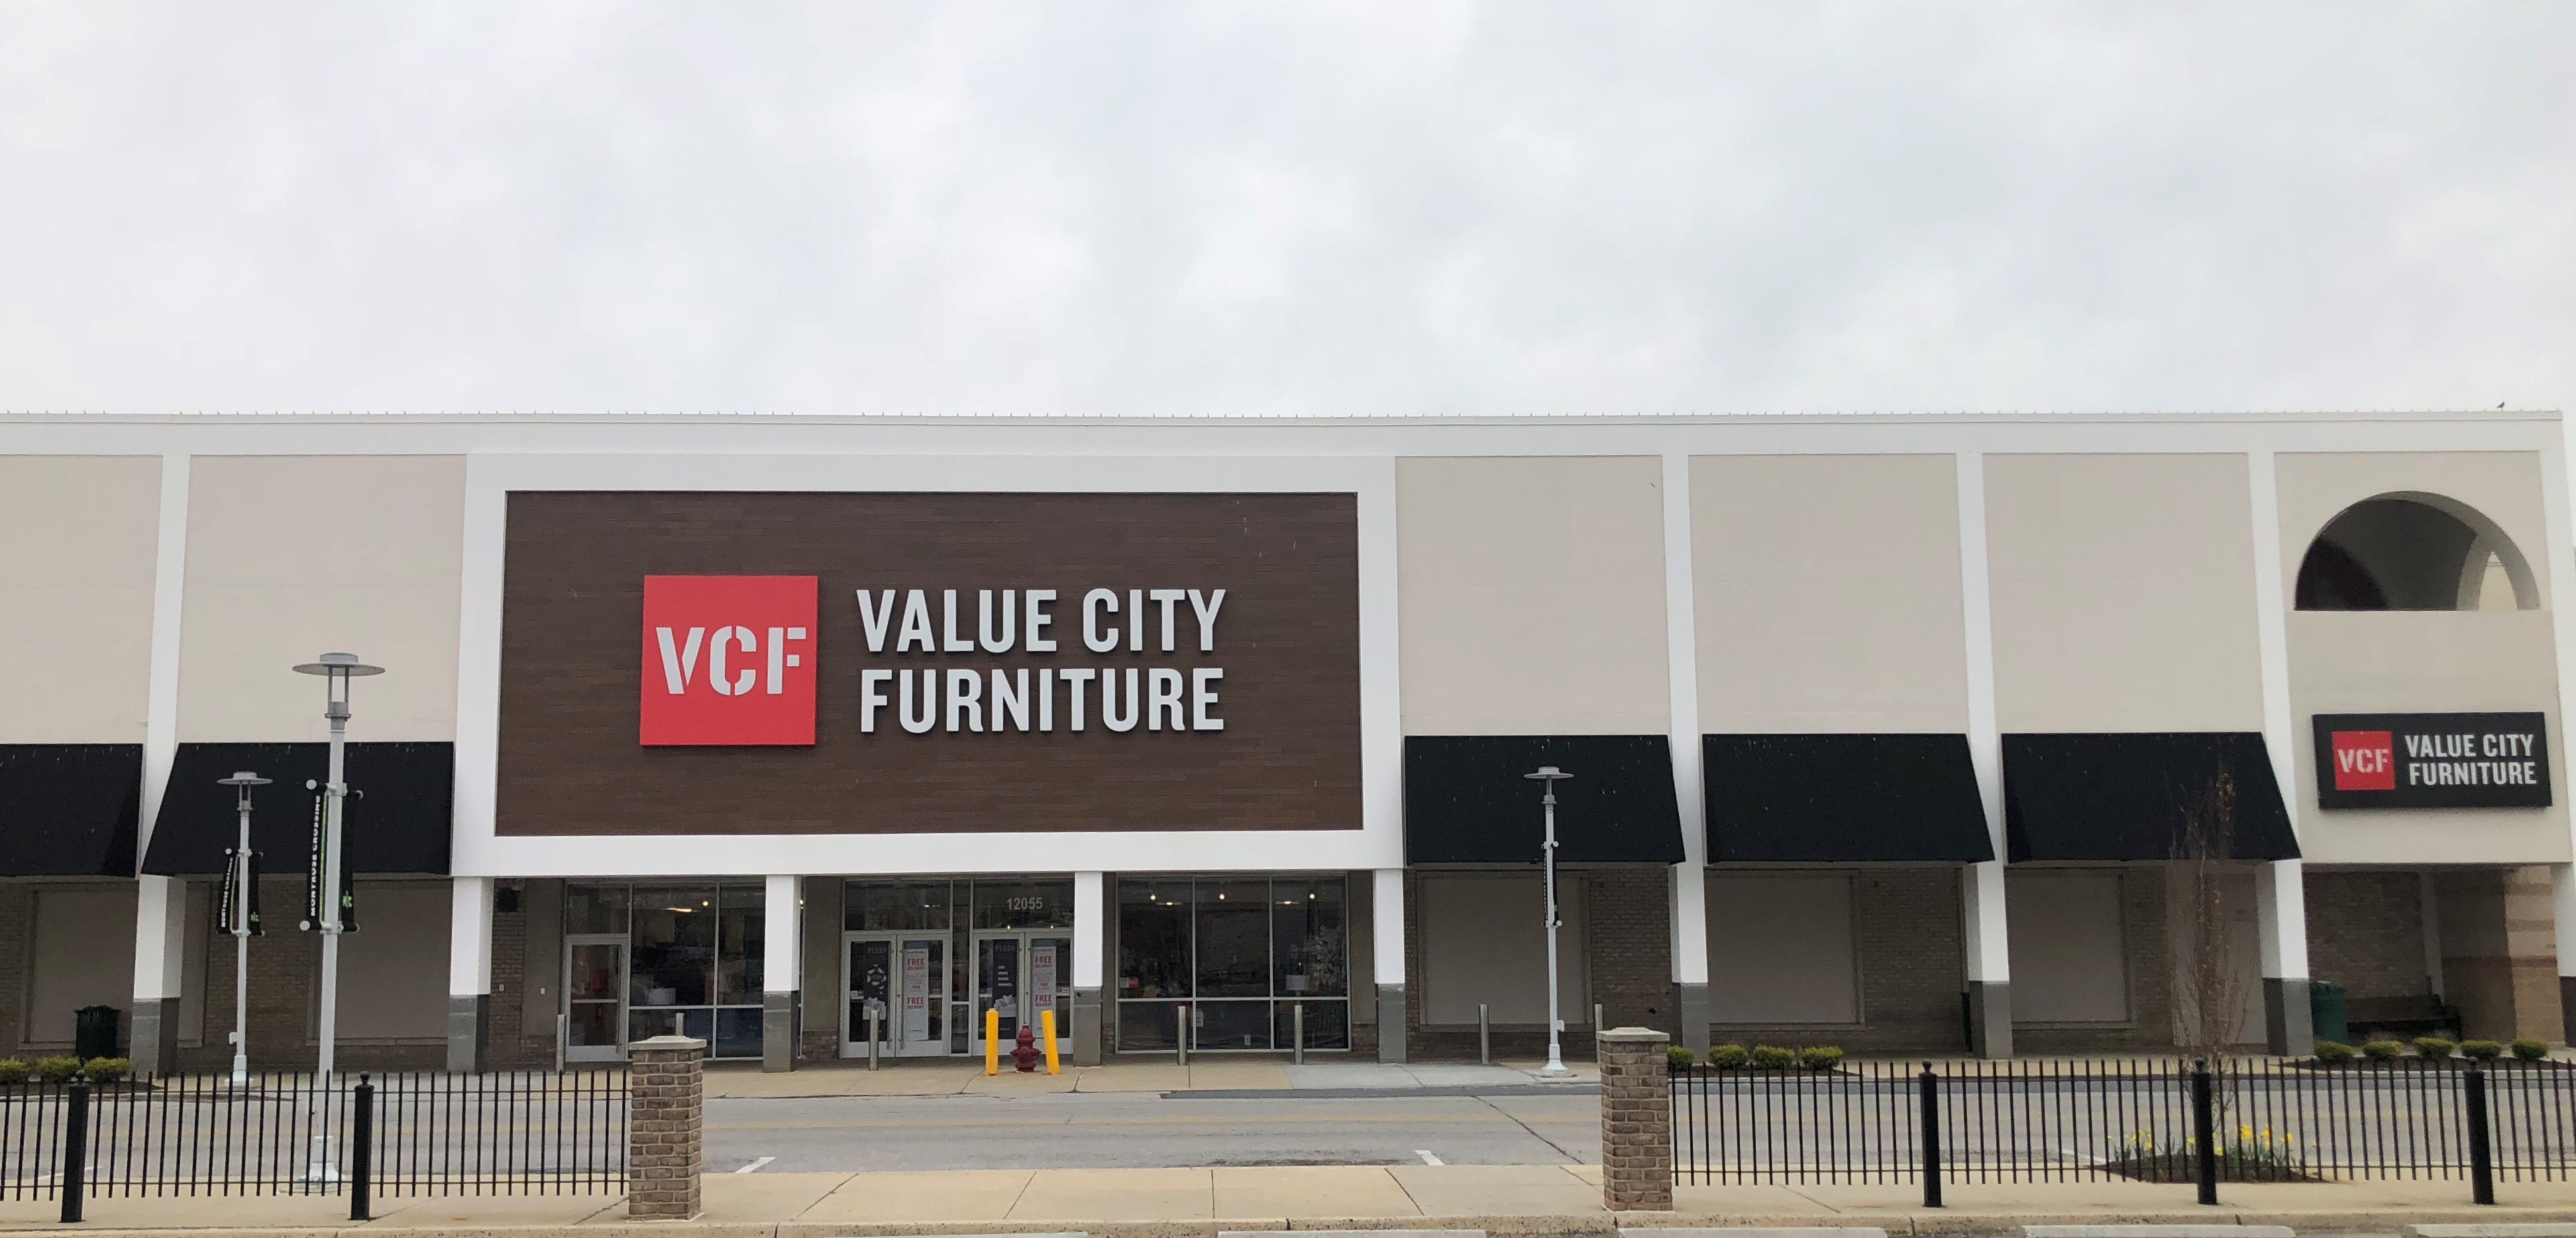 Value City Furniture image 5